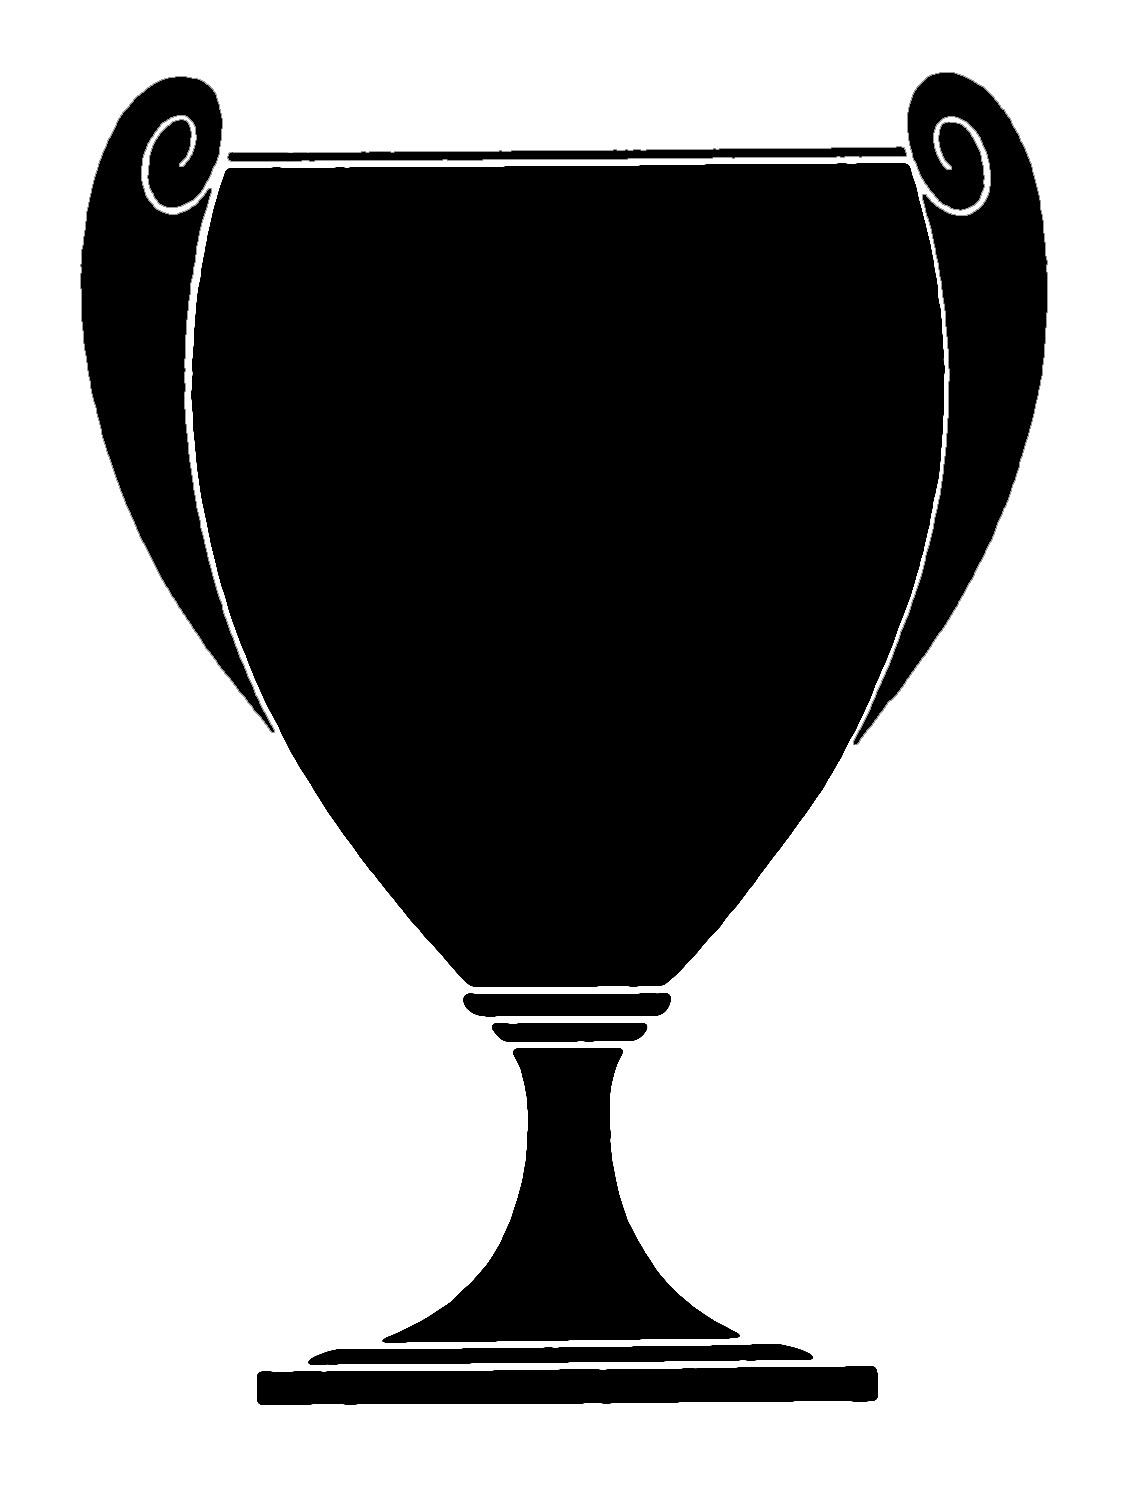 1134x1500 World Cup Trophy Clipart Free Barrie Ontario Population